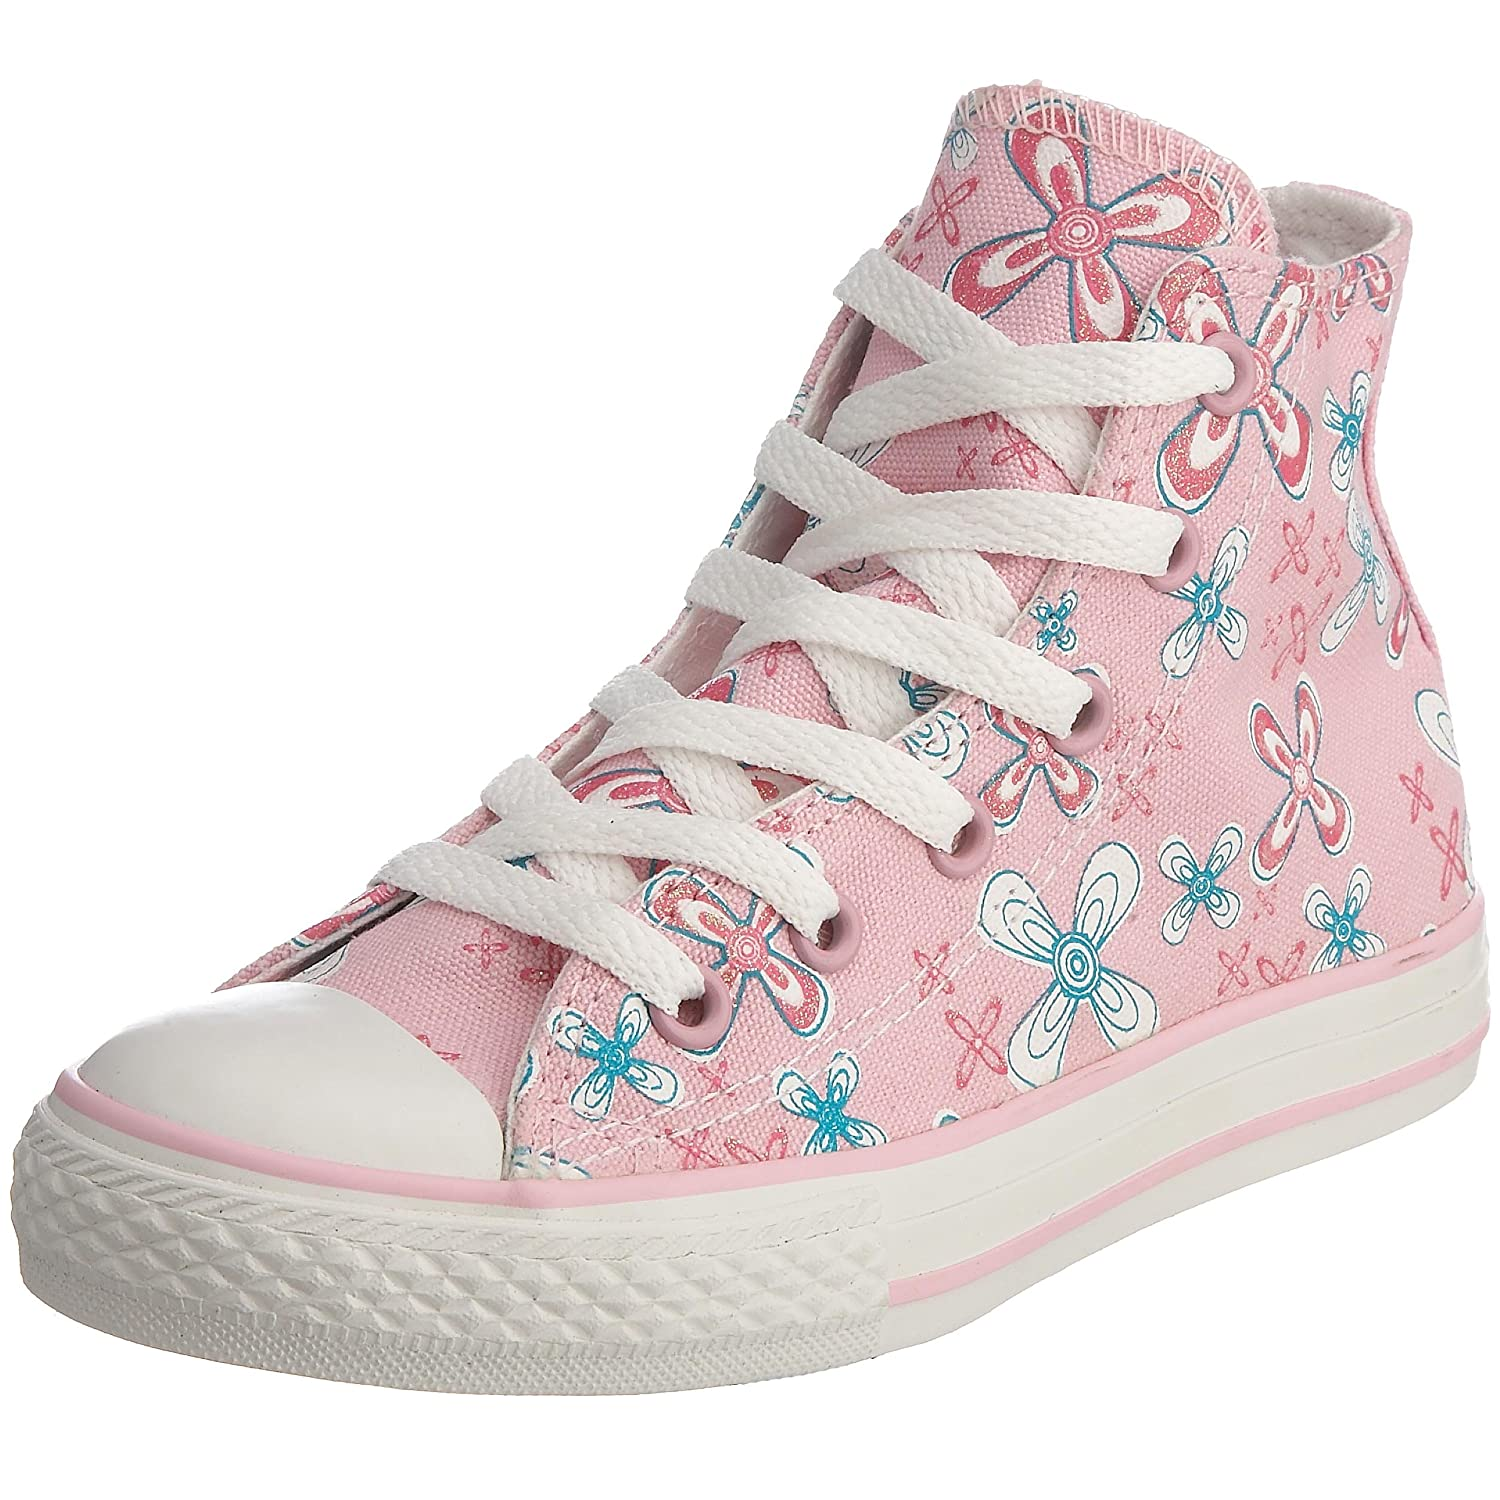 a98b14a3fc Converse Junior Chuck Taylor All Star Flower Print HI Lace-Up Pink  Lady Flowers 614149 10 Child UK  Amazon.co.uk  Shoes   Bags